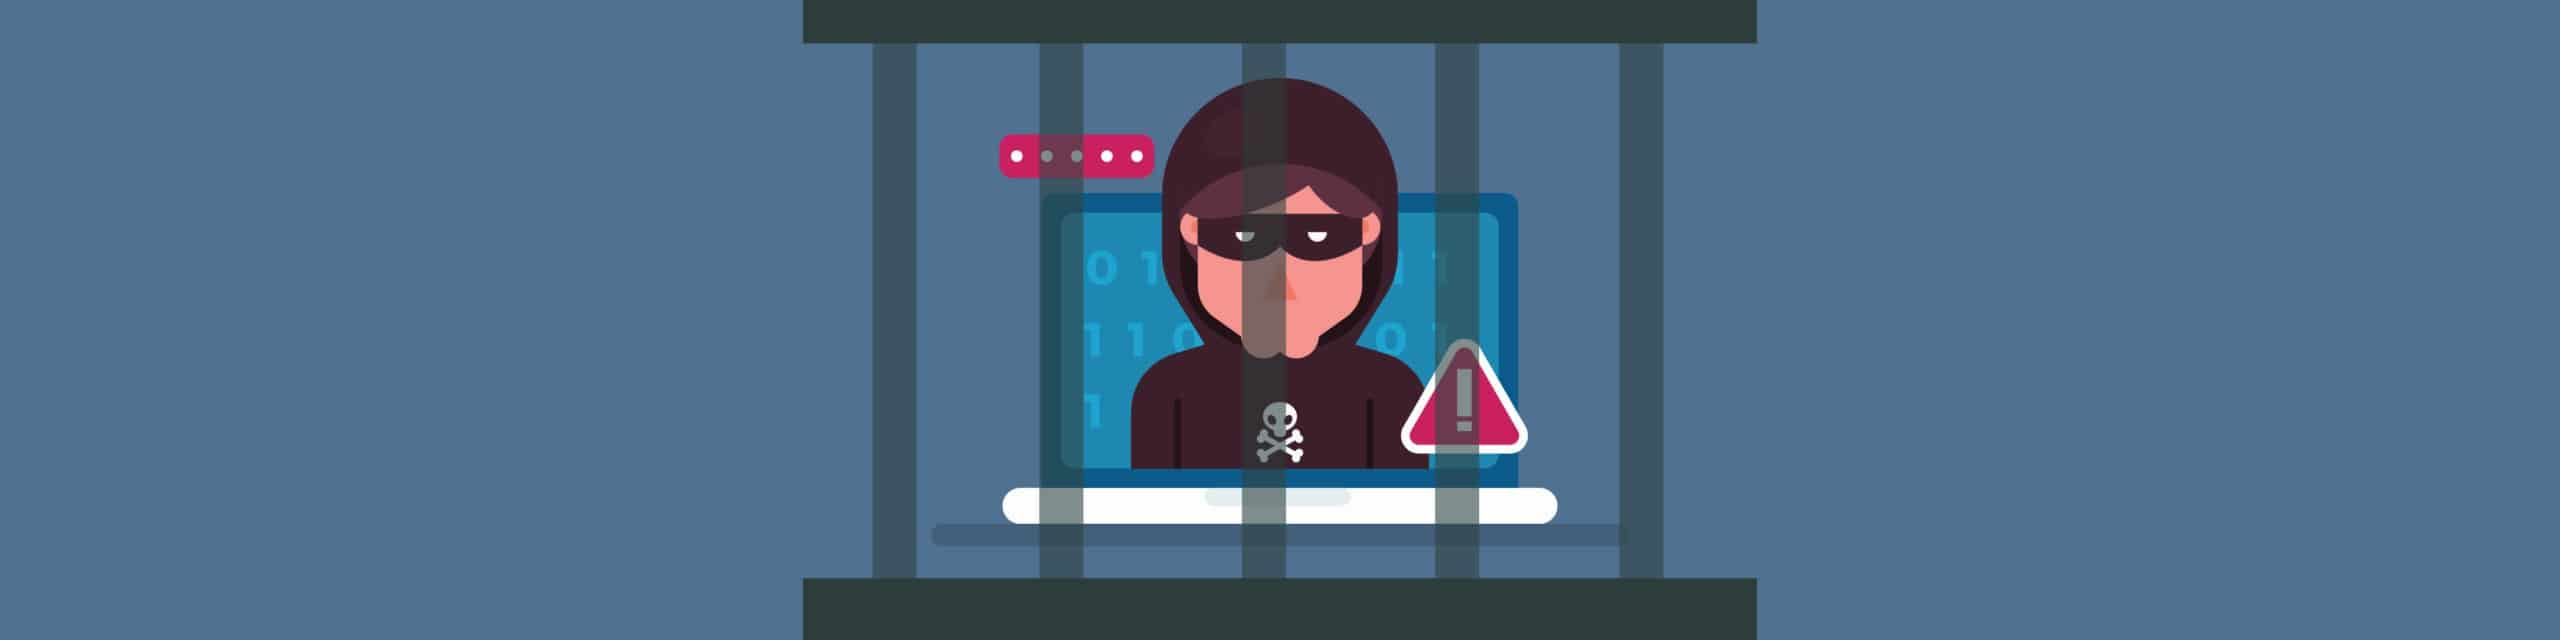 Tips on how to protect yourself against cybercrime